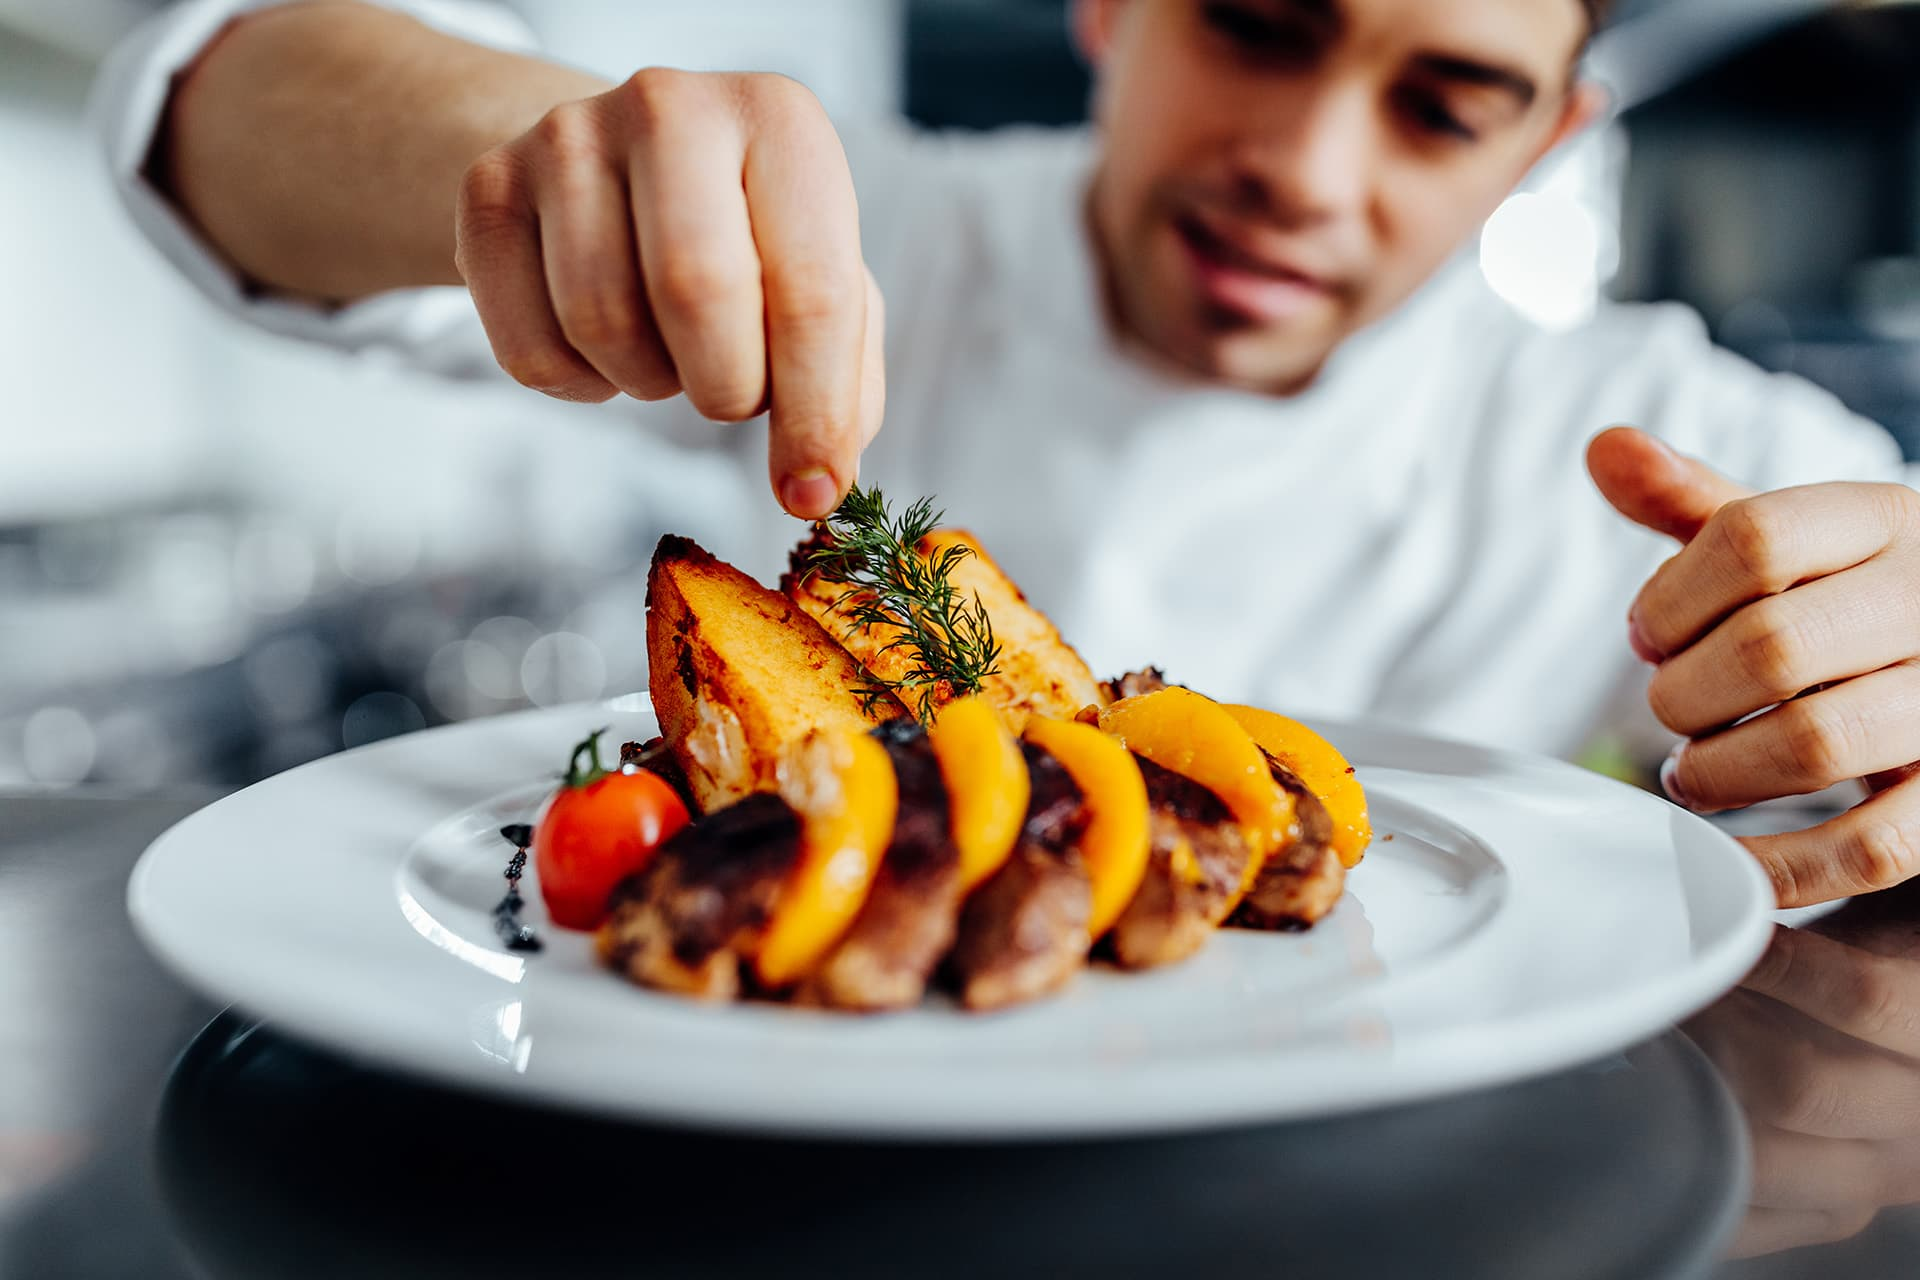 Chef adding seasoning onto sweet potatoes at restaurant with restaurant insurance